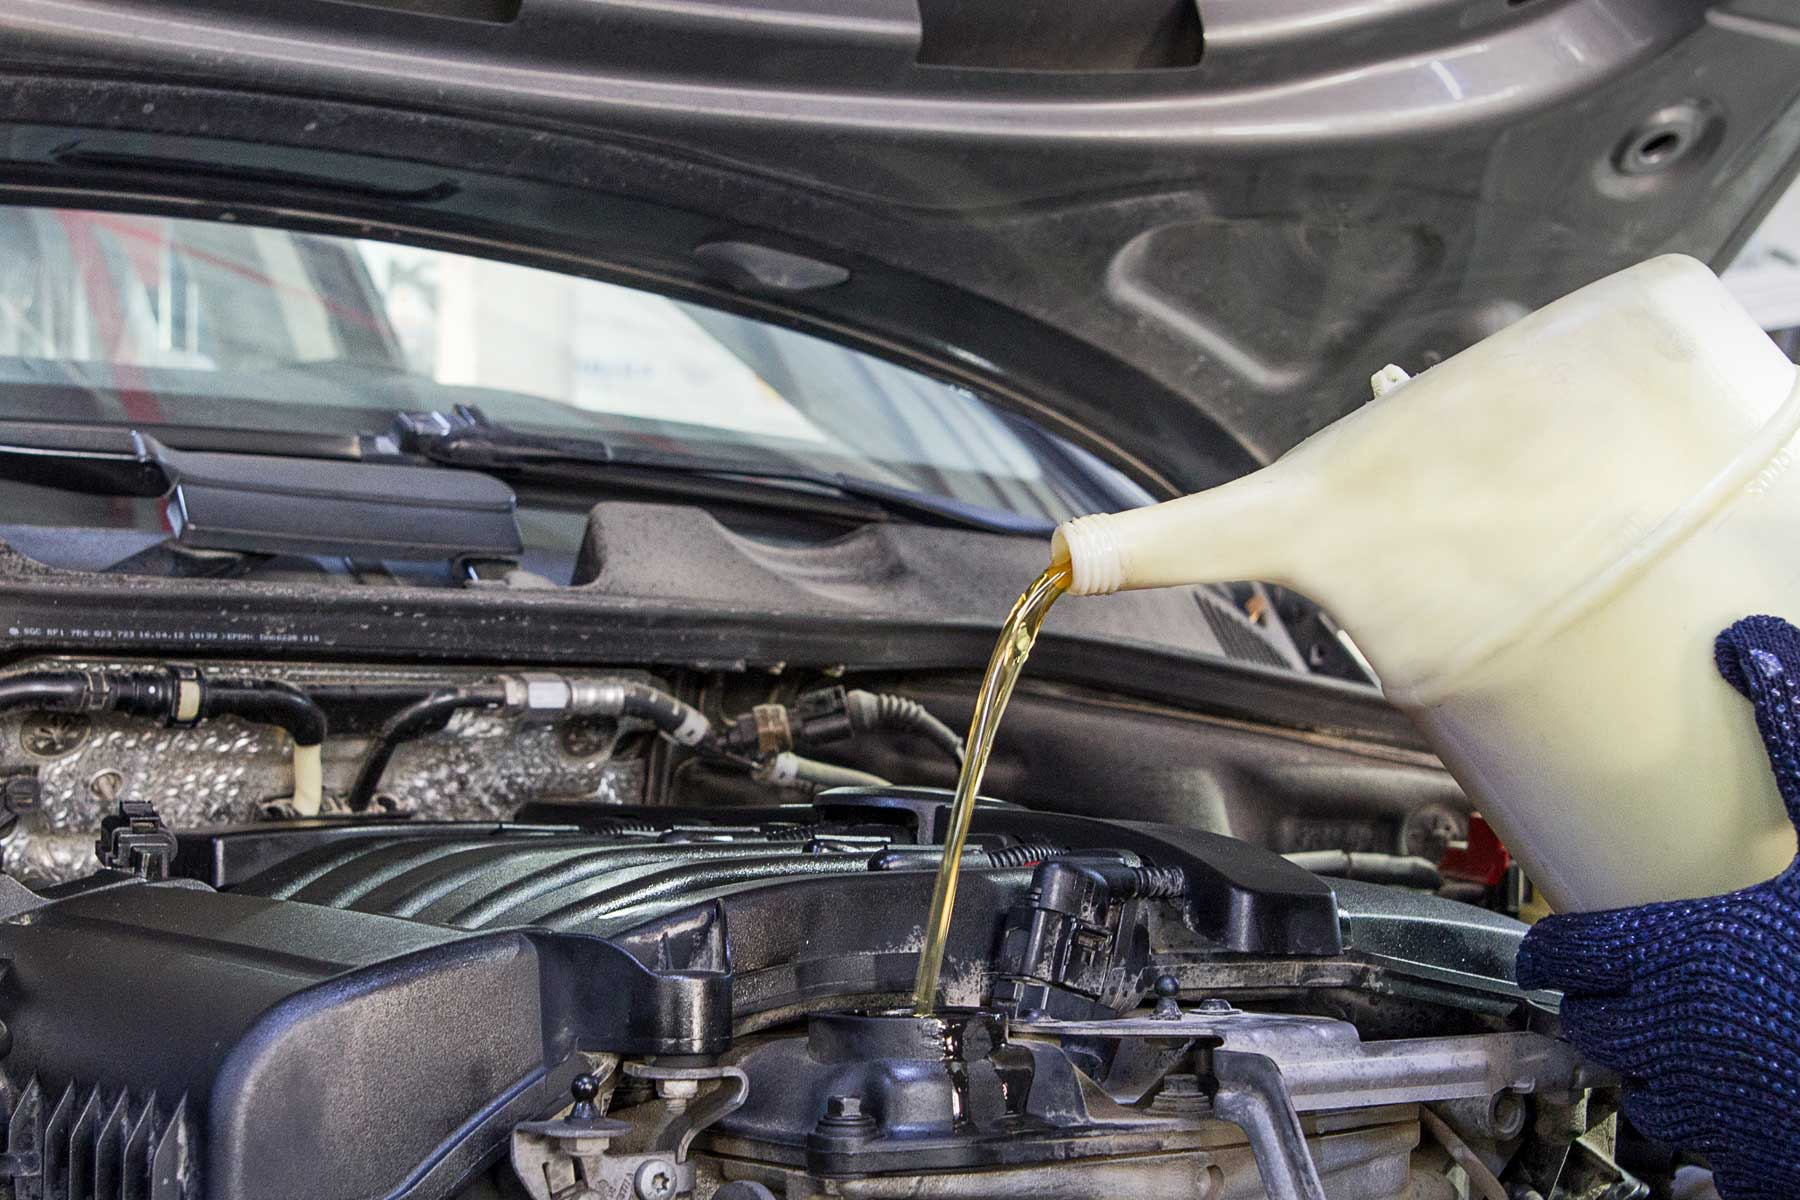 OIL CHANGE SERVICE IN DUBAI